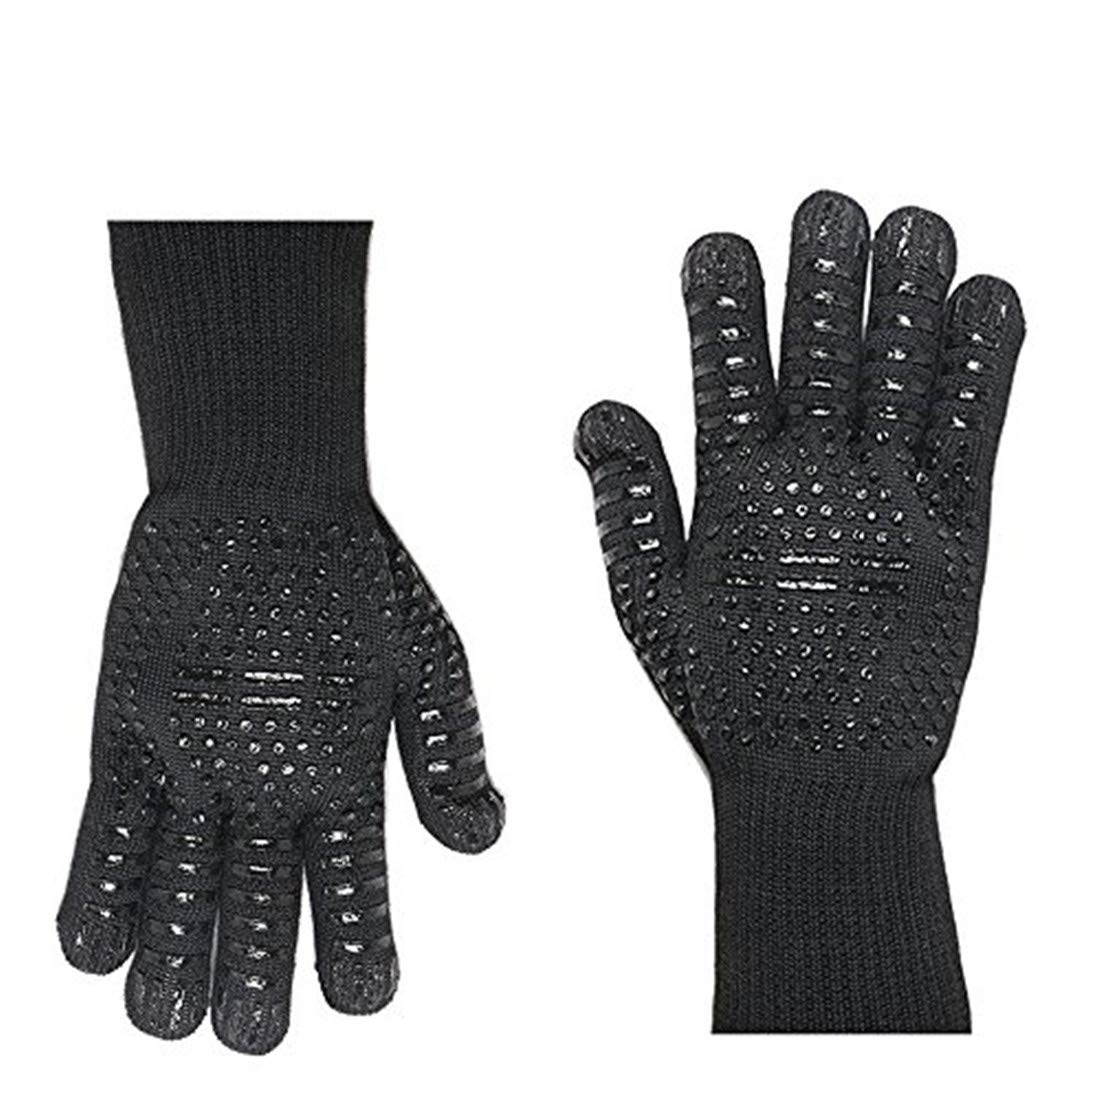 MIFXIN BBQ Gloves Grill Gloves 932°F Heat Resistant Silicone Grilling Gloves Protective Oven Gloves Fingers Oven Mitts Baking Cooking Outdoor